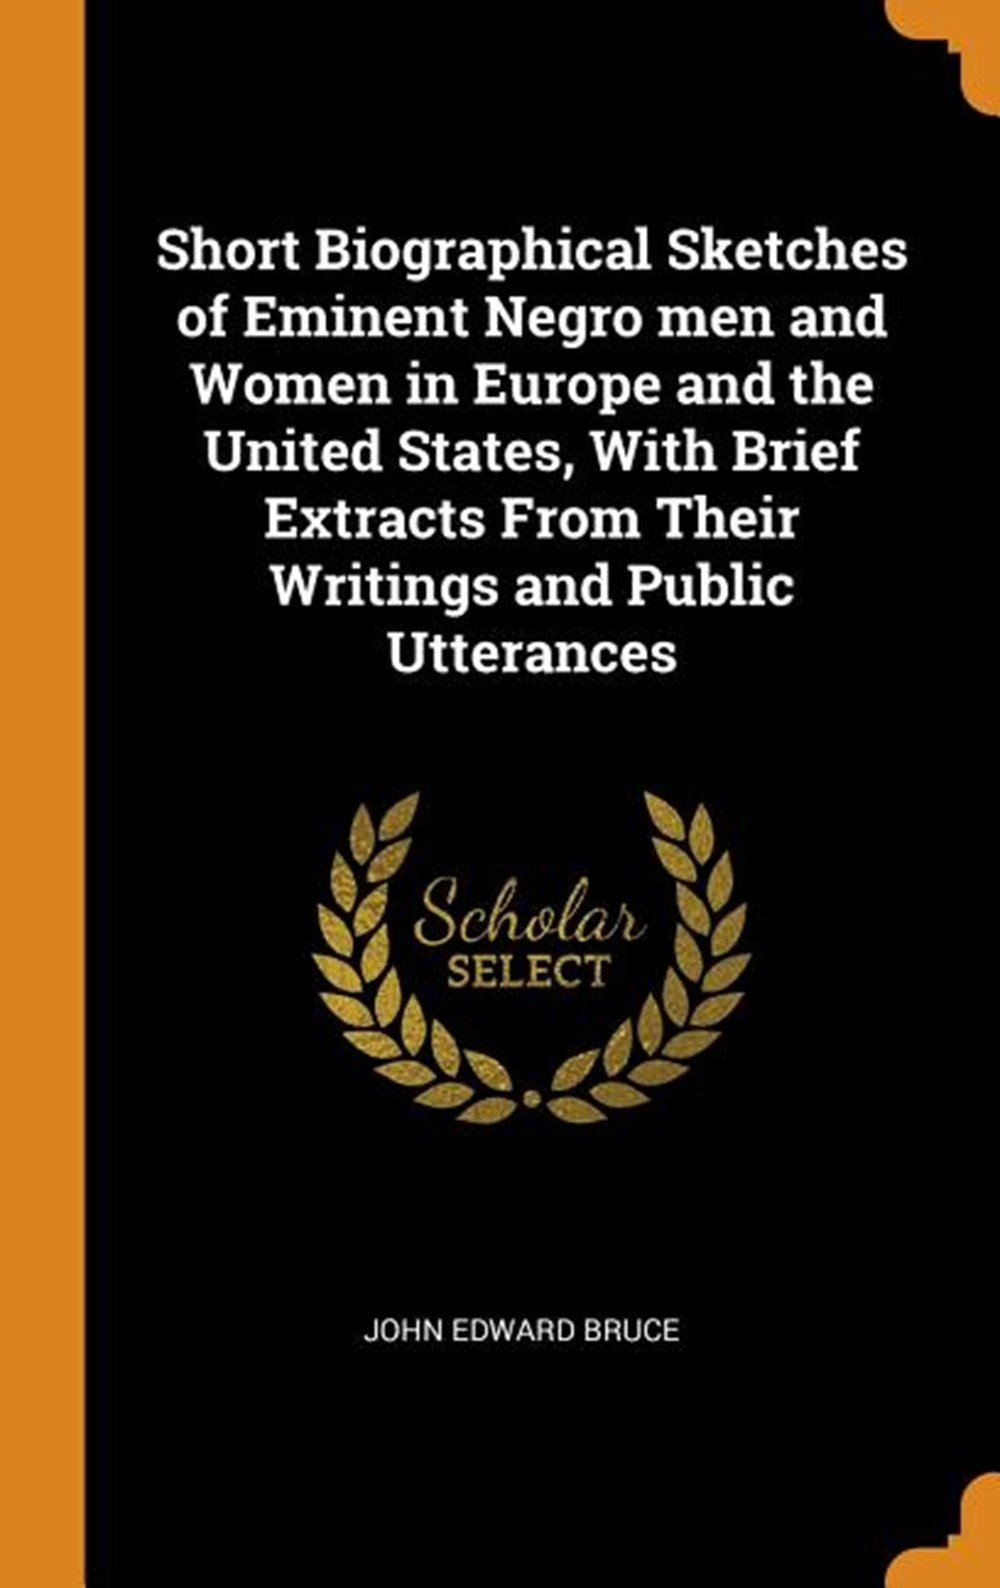 Short Biographical Sketches of Eminent Negro Men and Women in Europe and the United States, with Bri